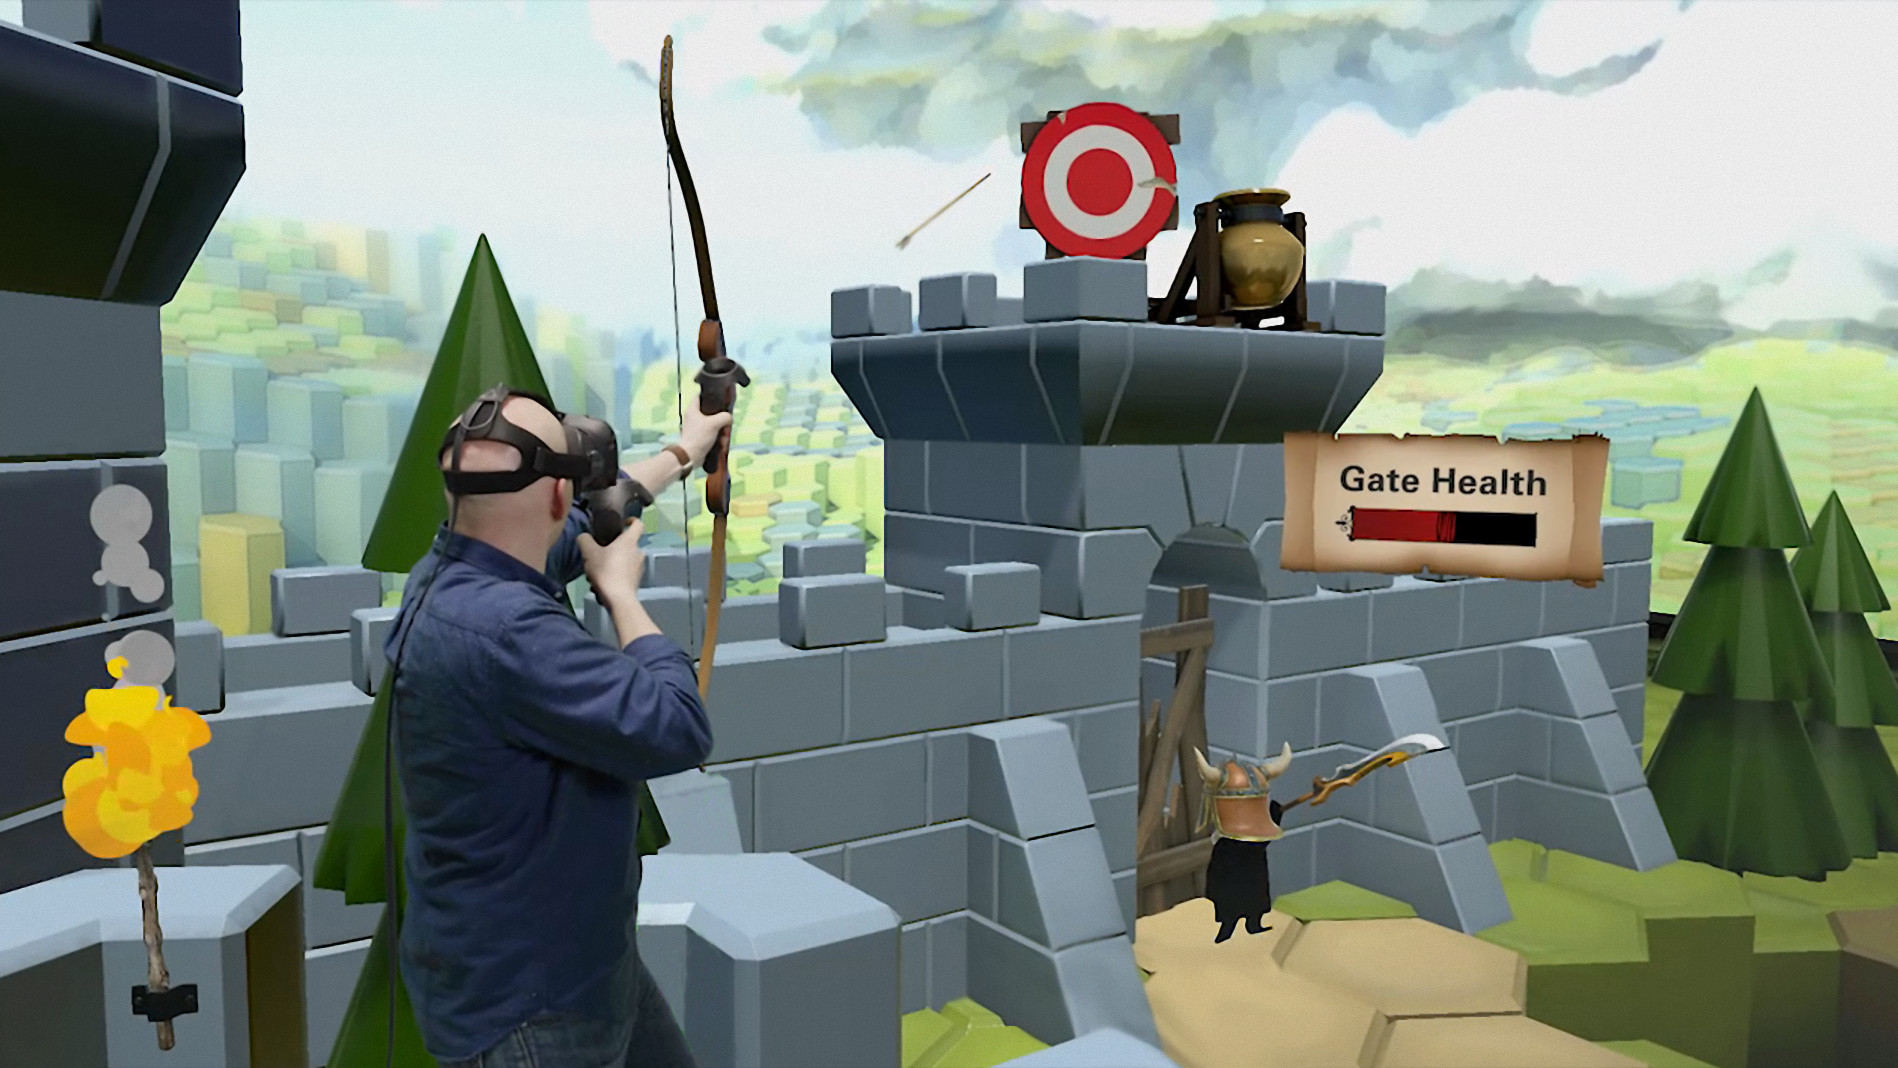 VR Event Booth Games: The Lab – Longbow Review